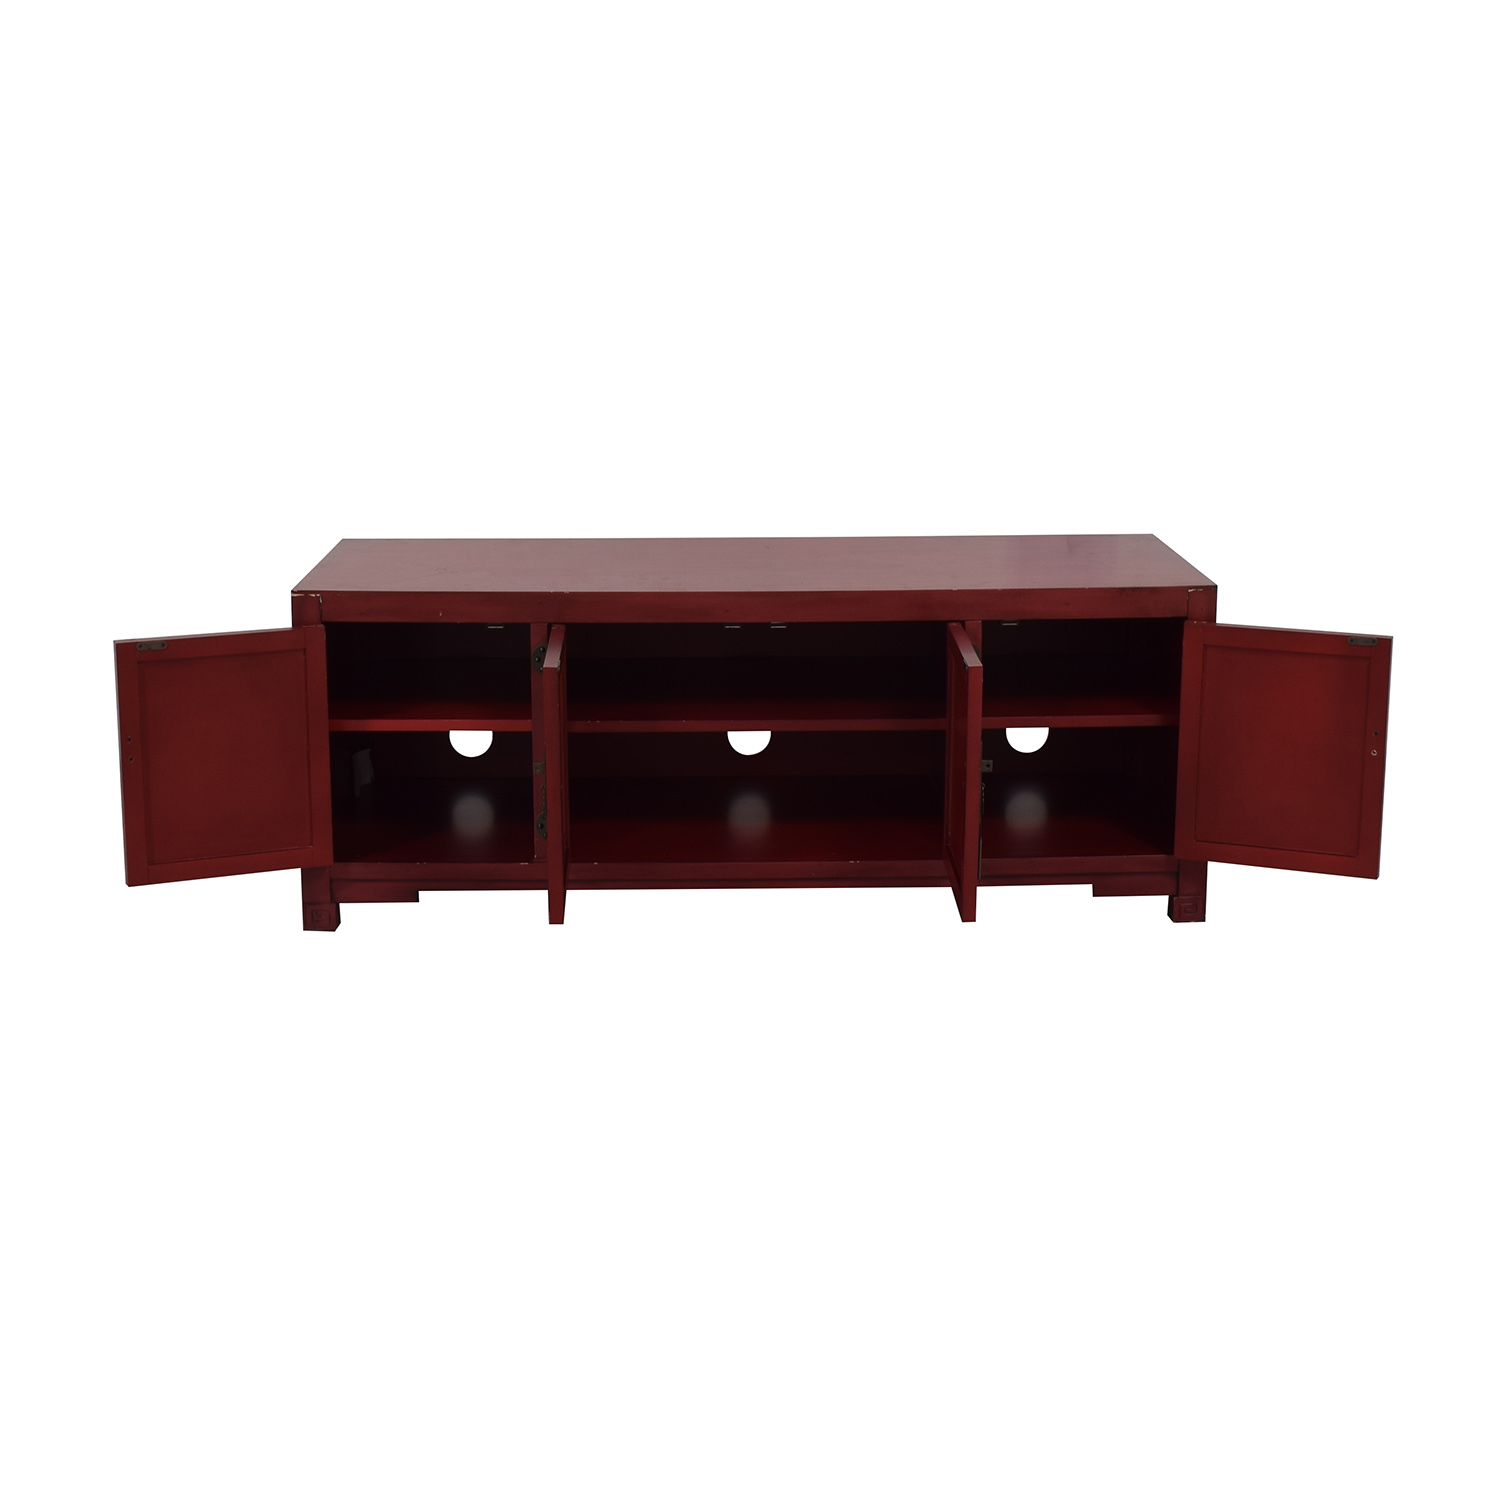 Klaussner Klaussner Red Media Unit second hand